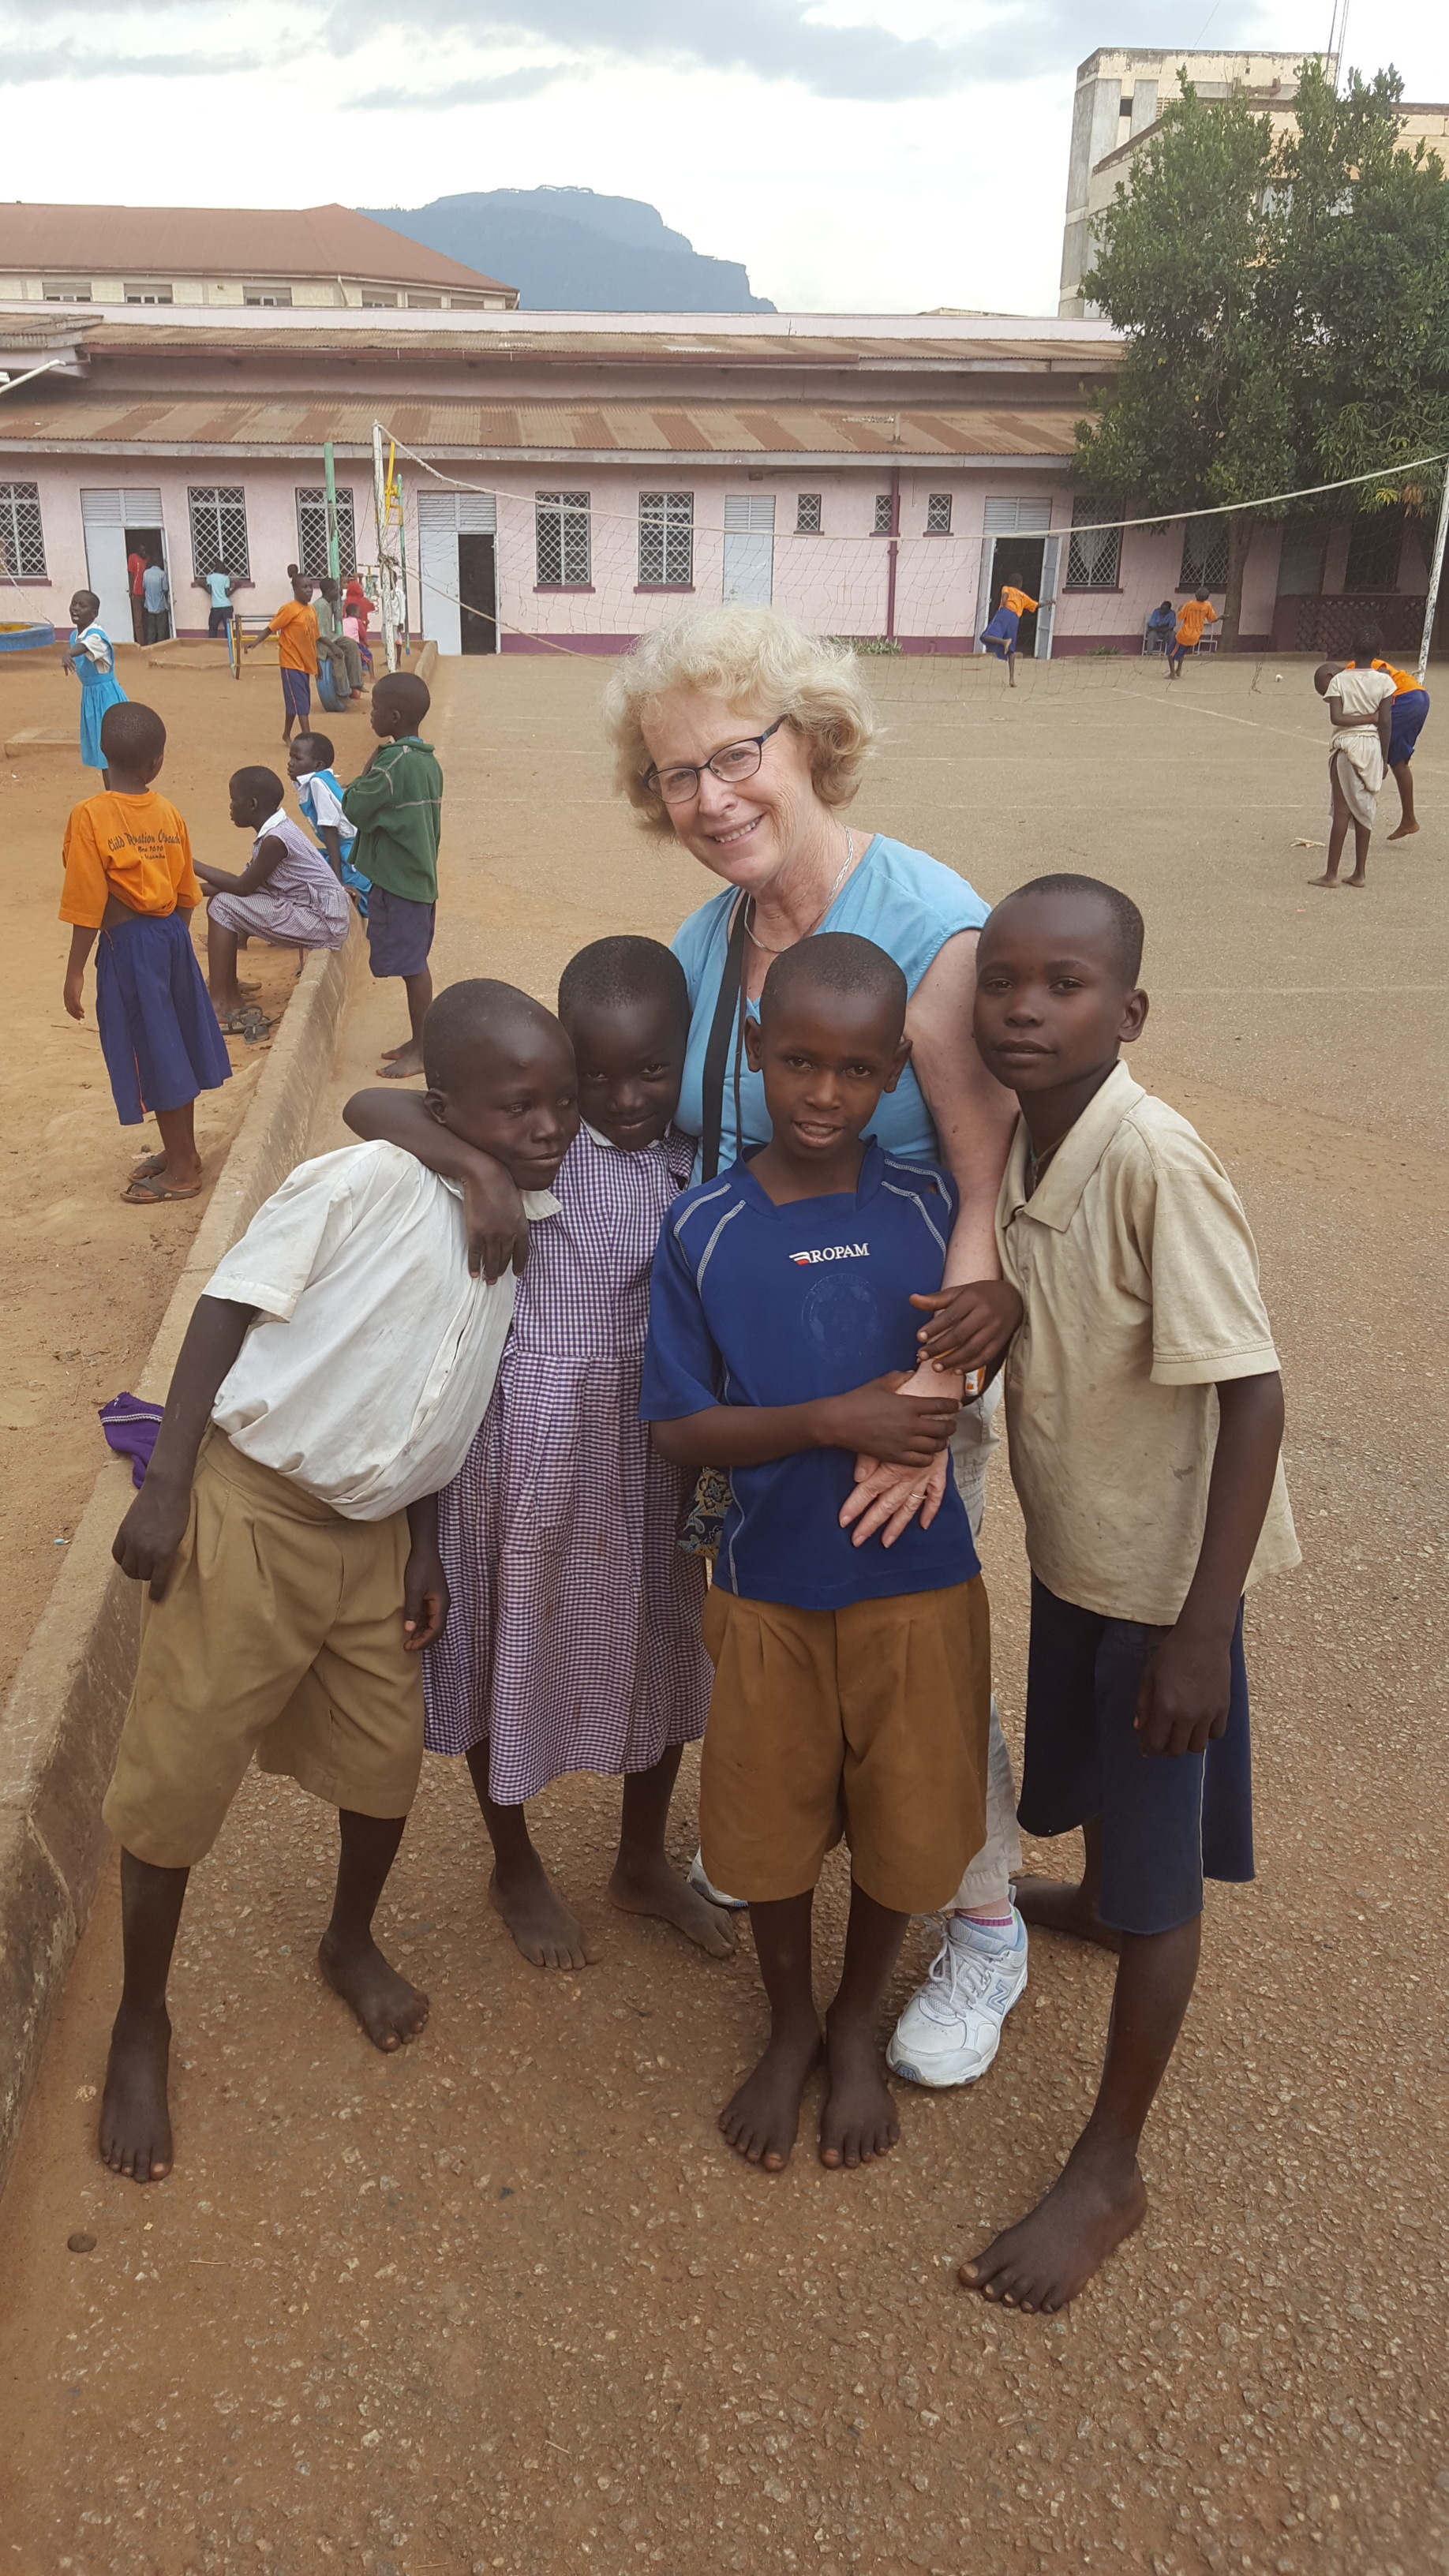 Sally Ryan at the C.R.O. project center in Mbale in 2016 with C.R.O. youth.